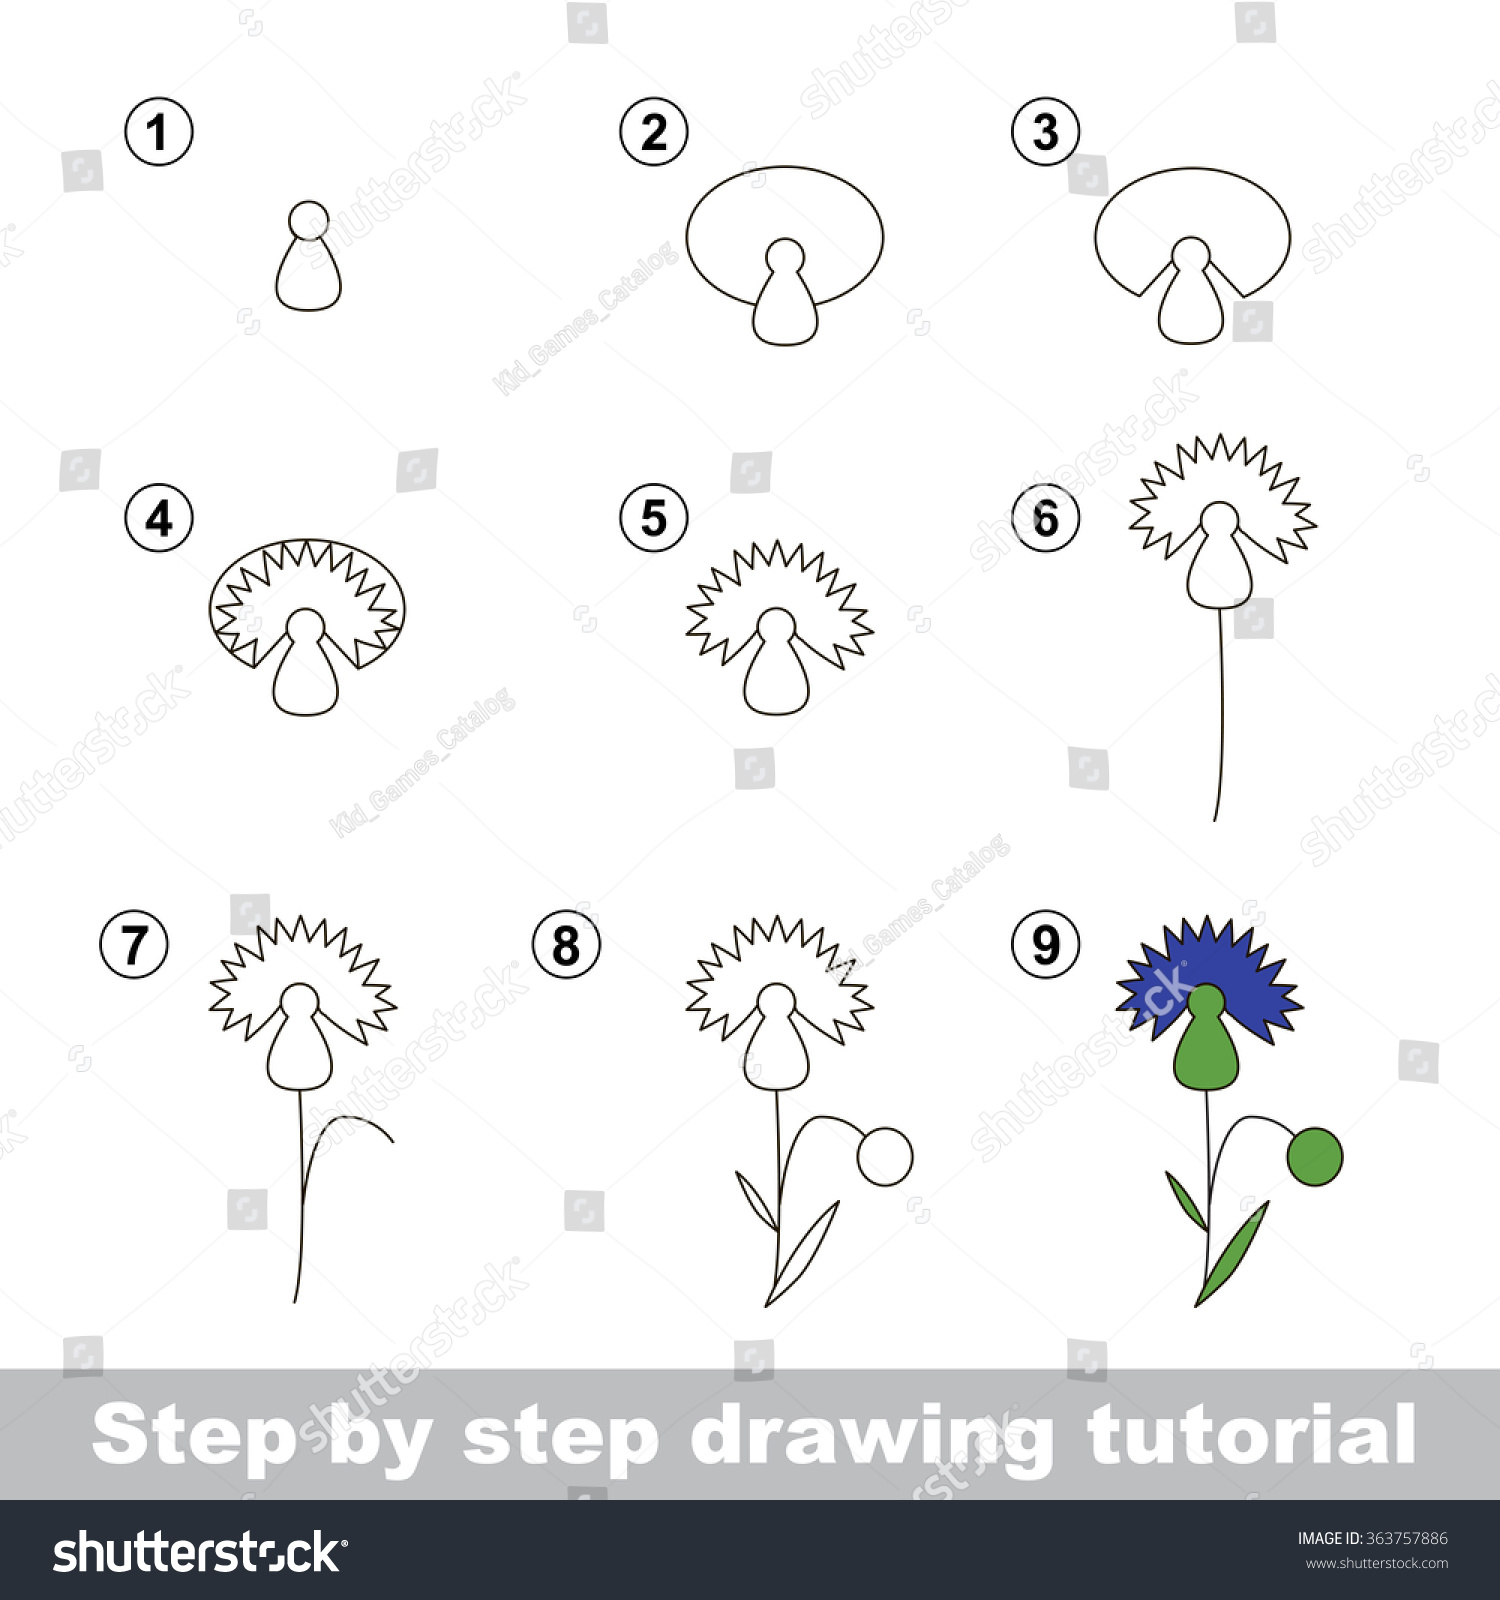 Step By Step Drawing Tutorial Vector Kid Game How To Draw A Cornflower Step  By Step